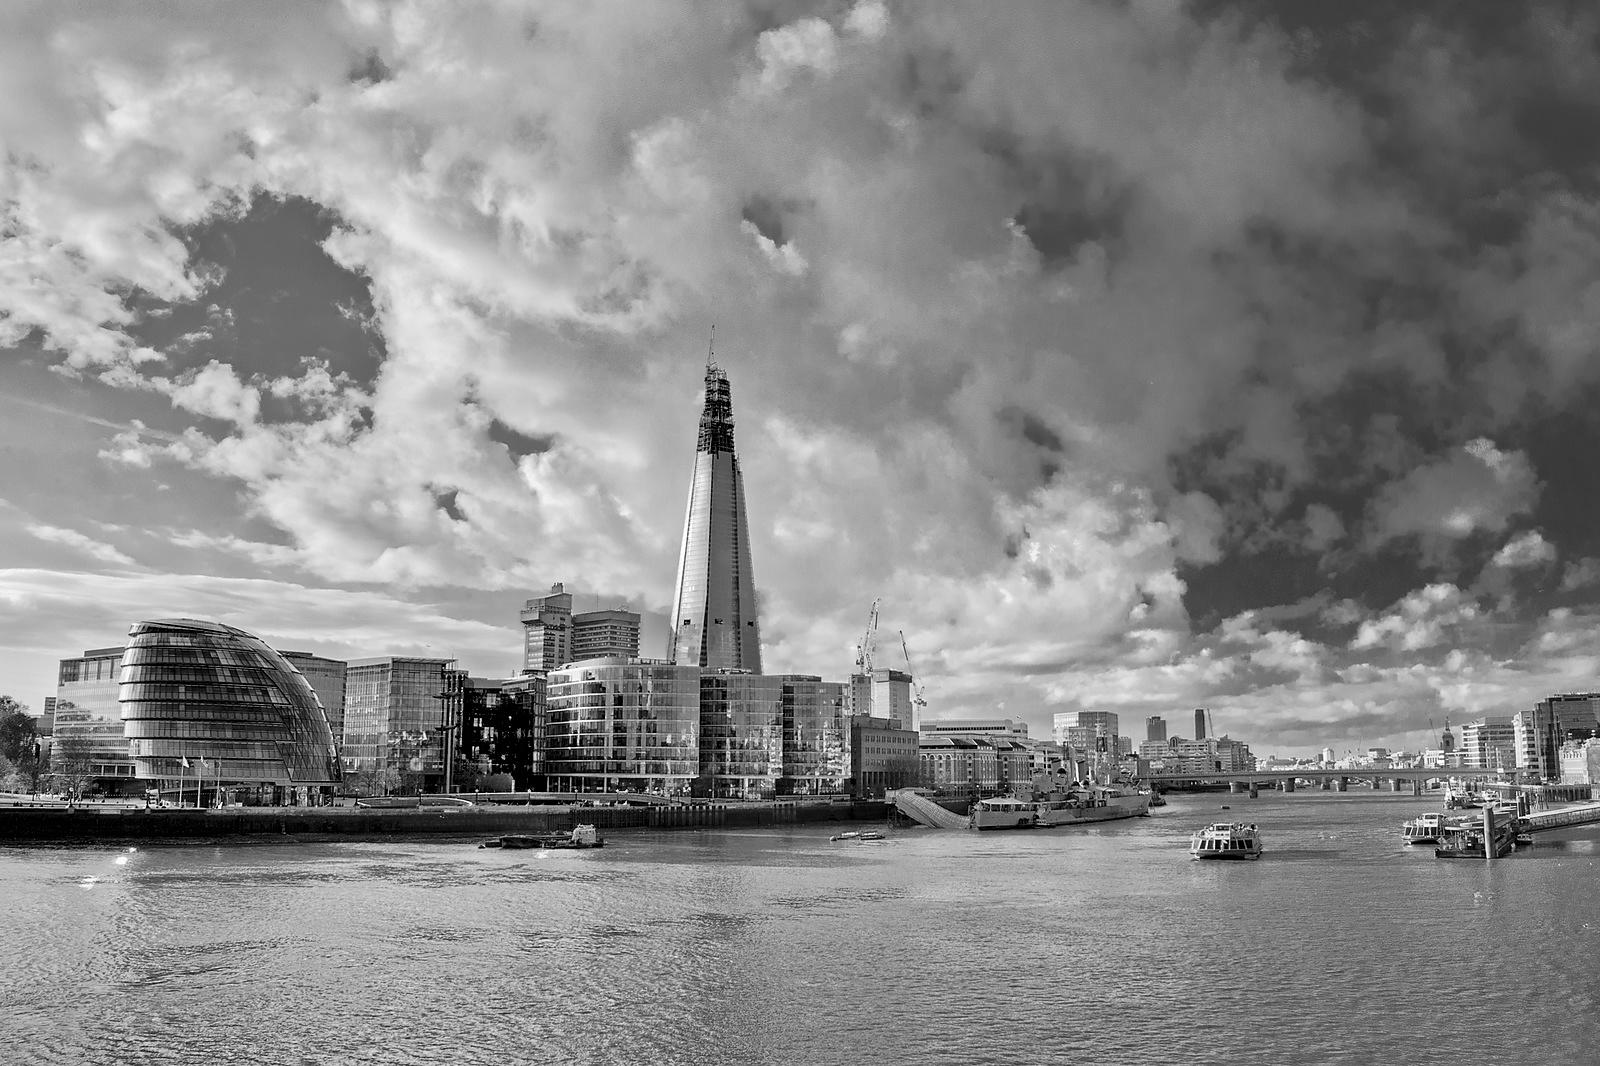 Thames view with Shard BW